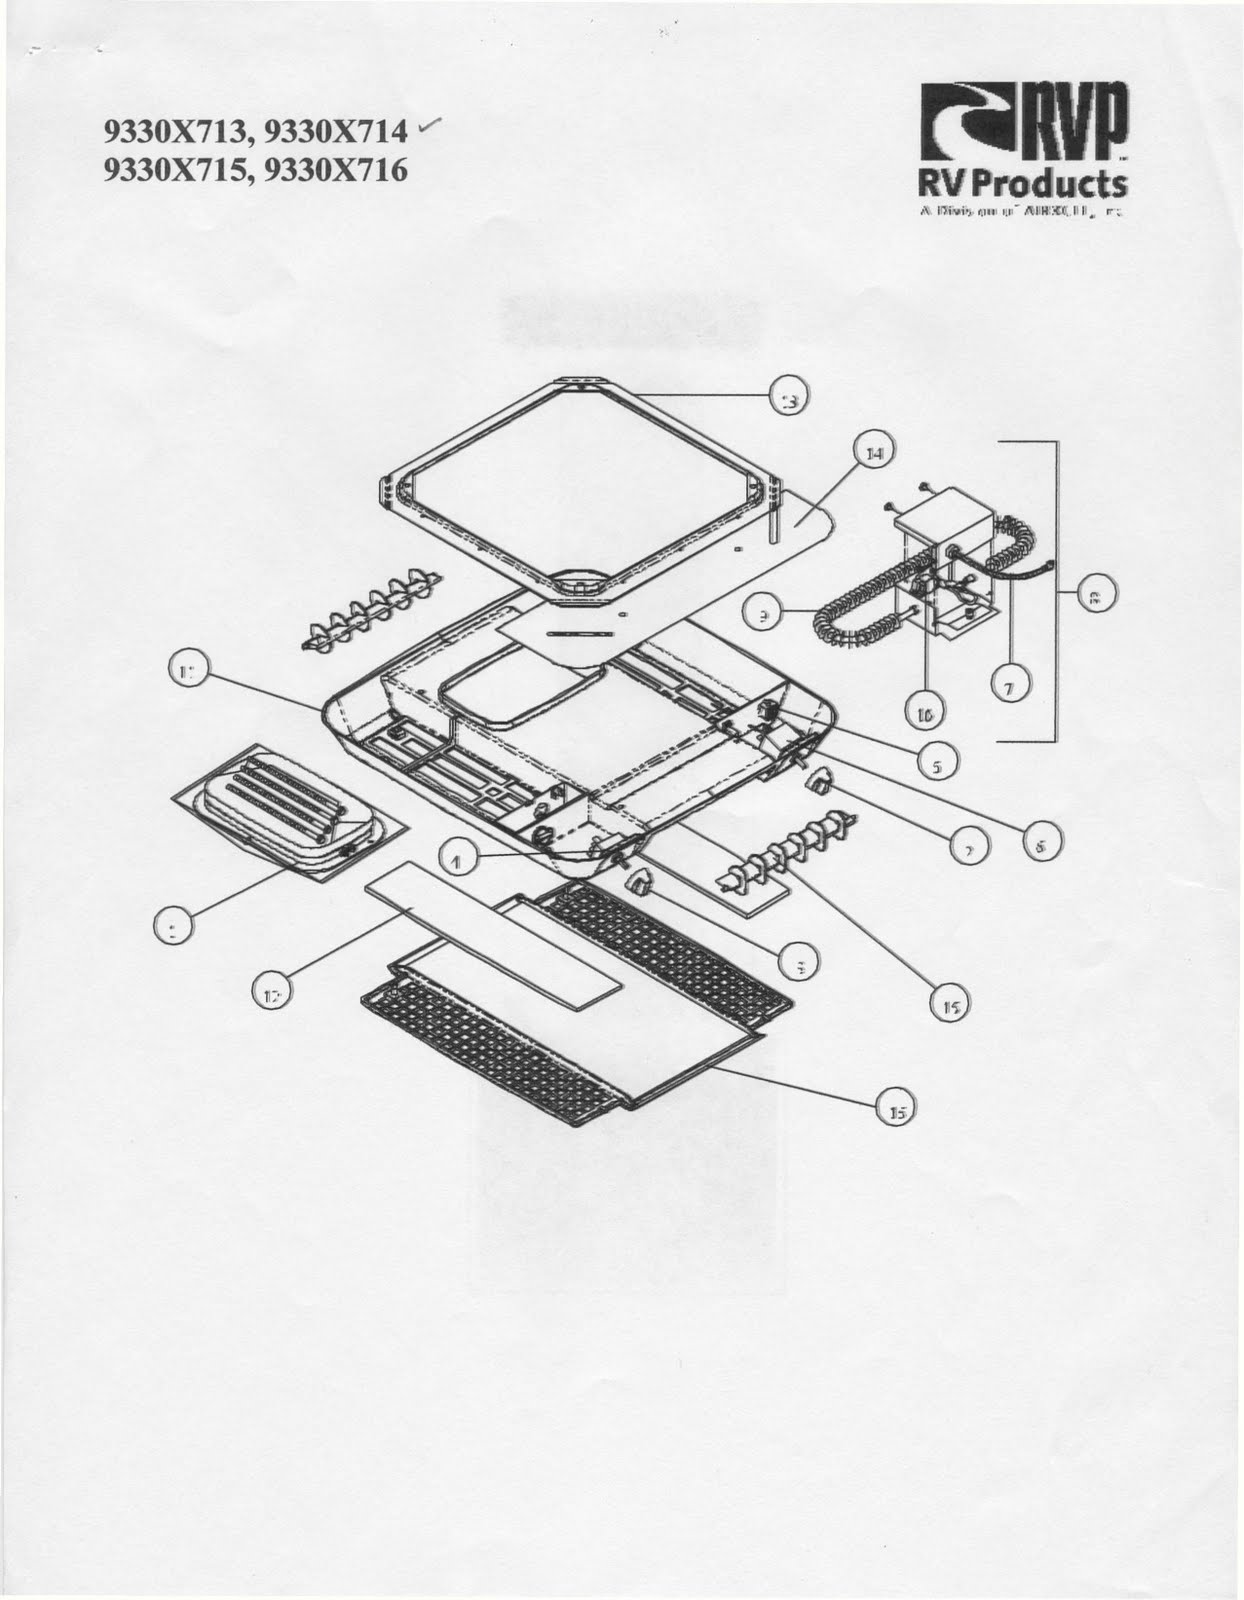 coleman+roof+ac0001%5B1%5D 014 1983 fleetwood pace arrow owners manuals rv air conditioners Toyota Wiring Harness Diagram at alyssarenee.co